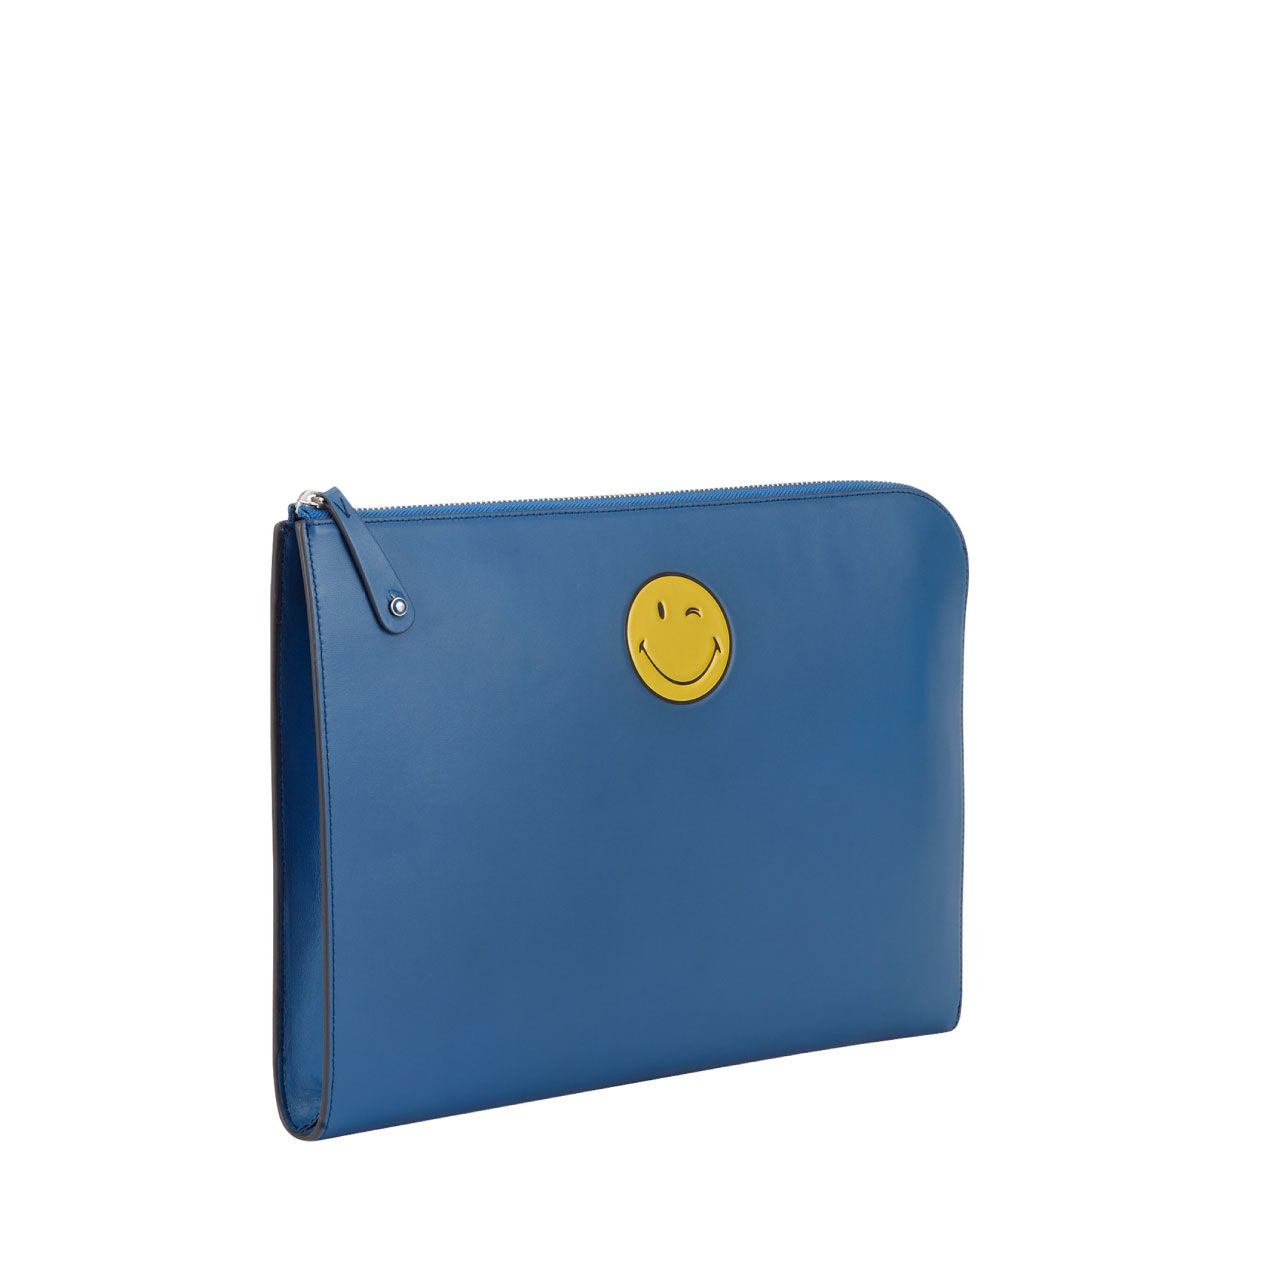 Anya Hindmarch Wink Document Case